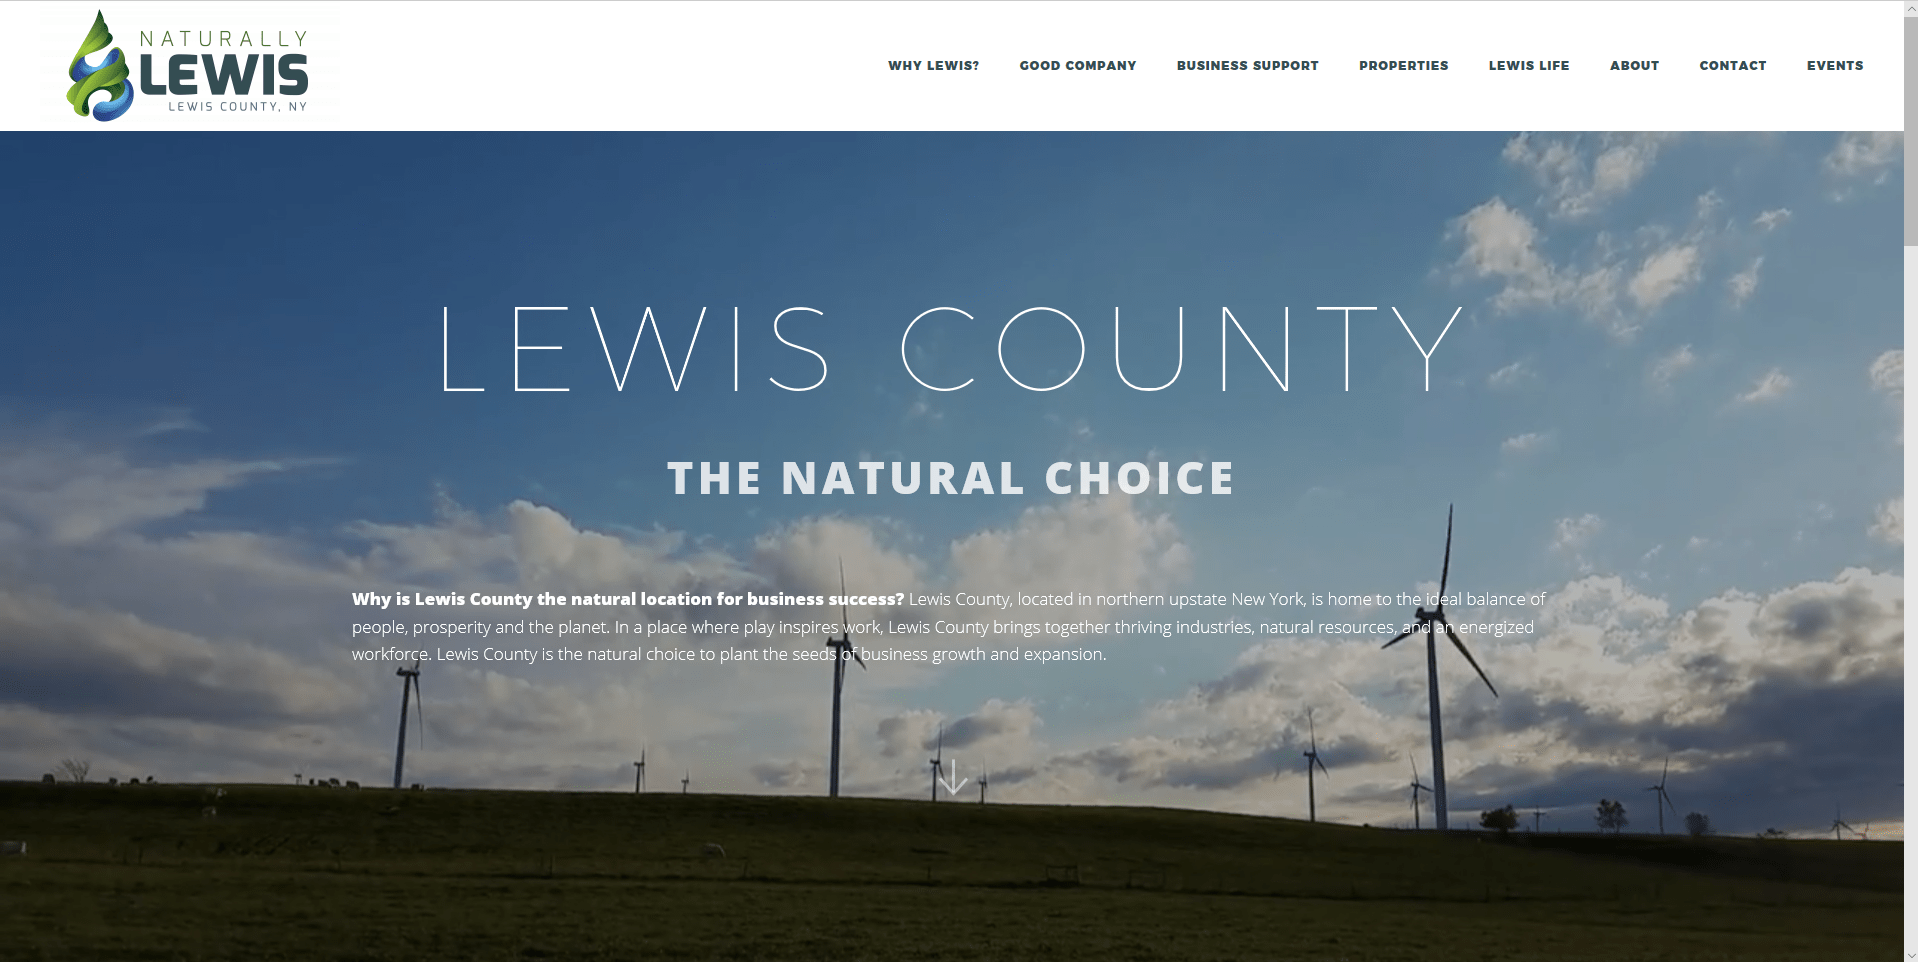 Lewis County Economic Development (Naturally Lewis)